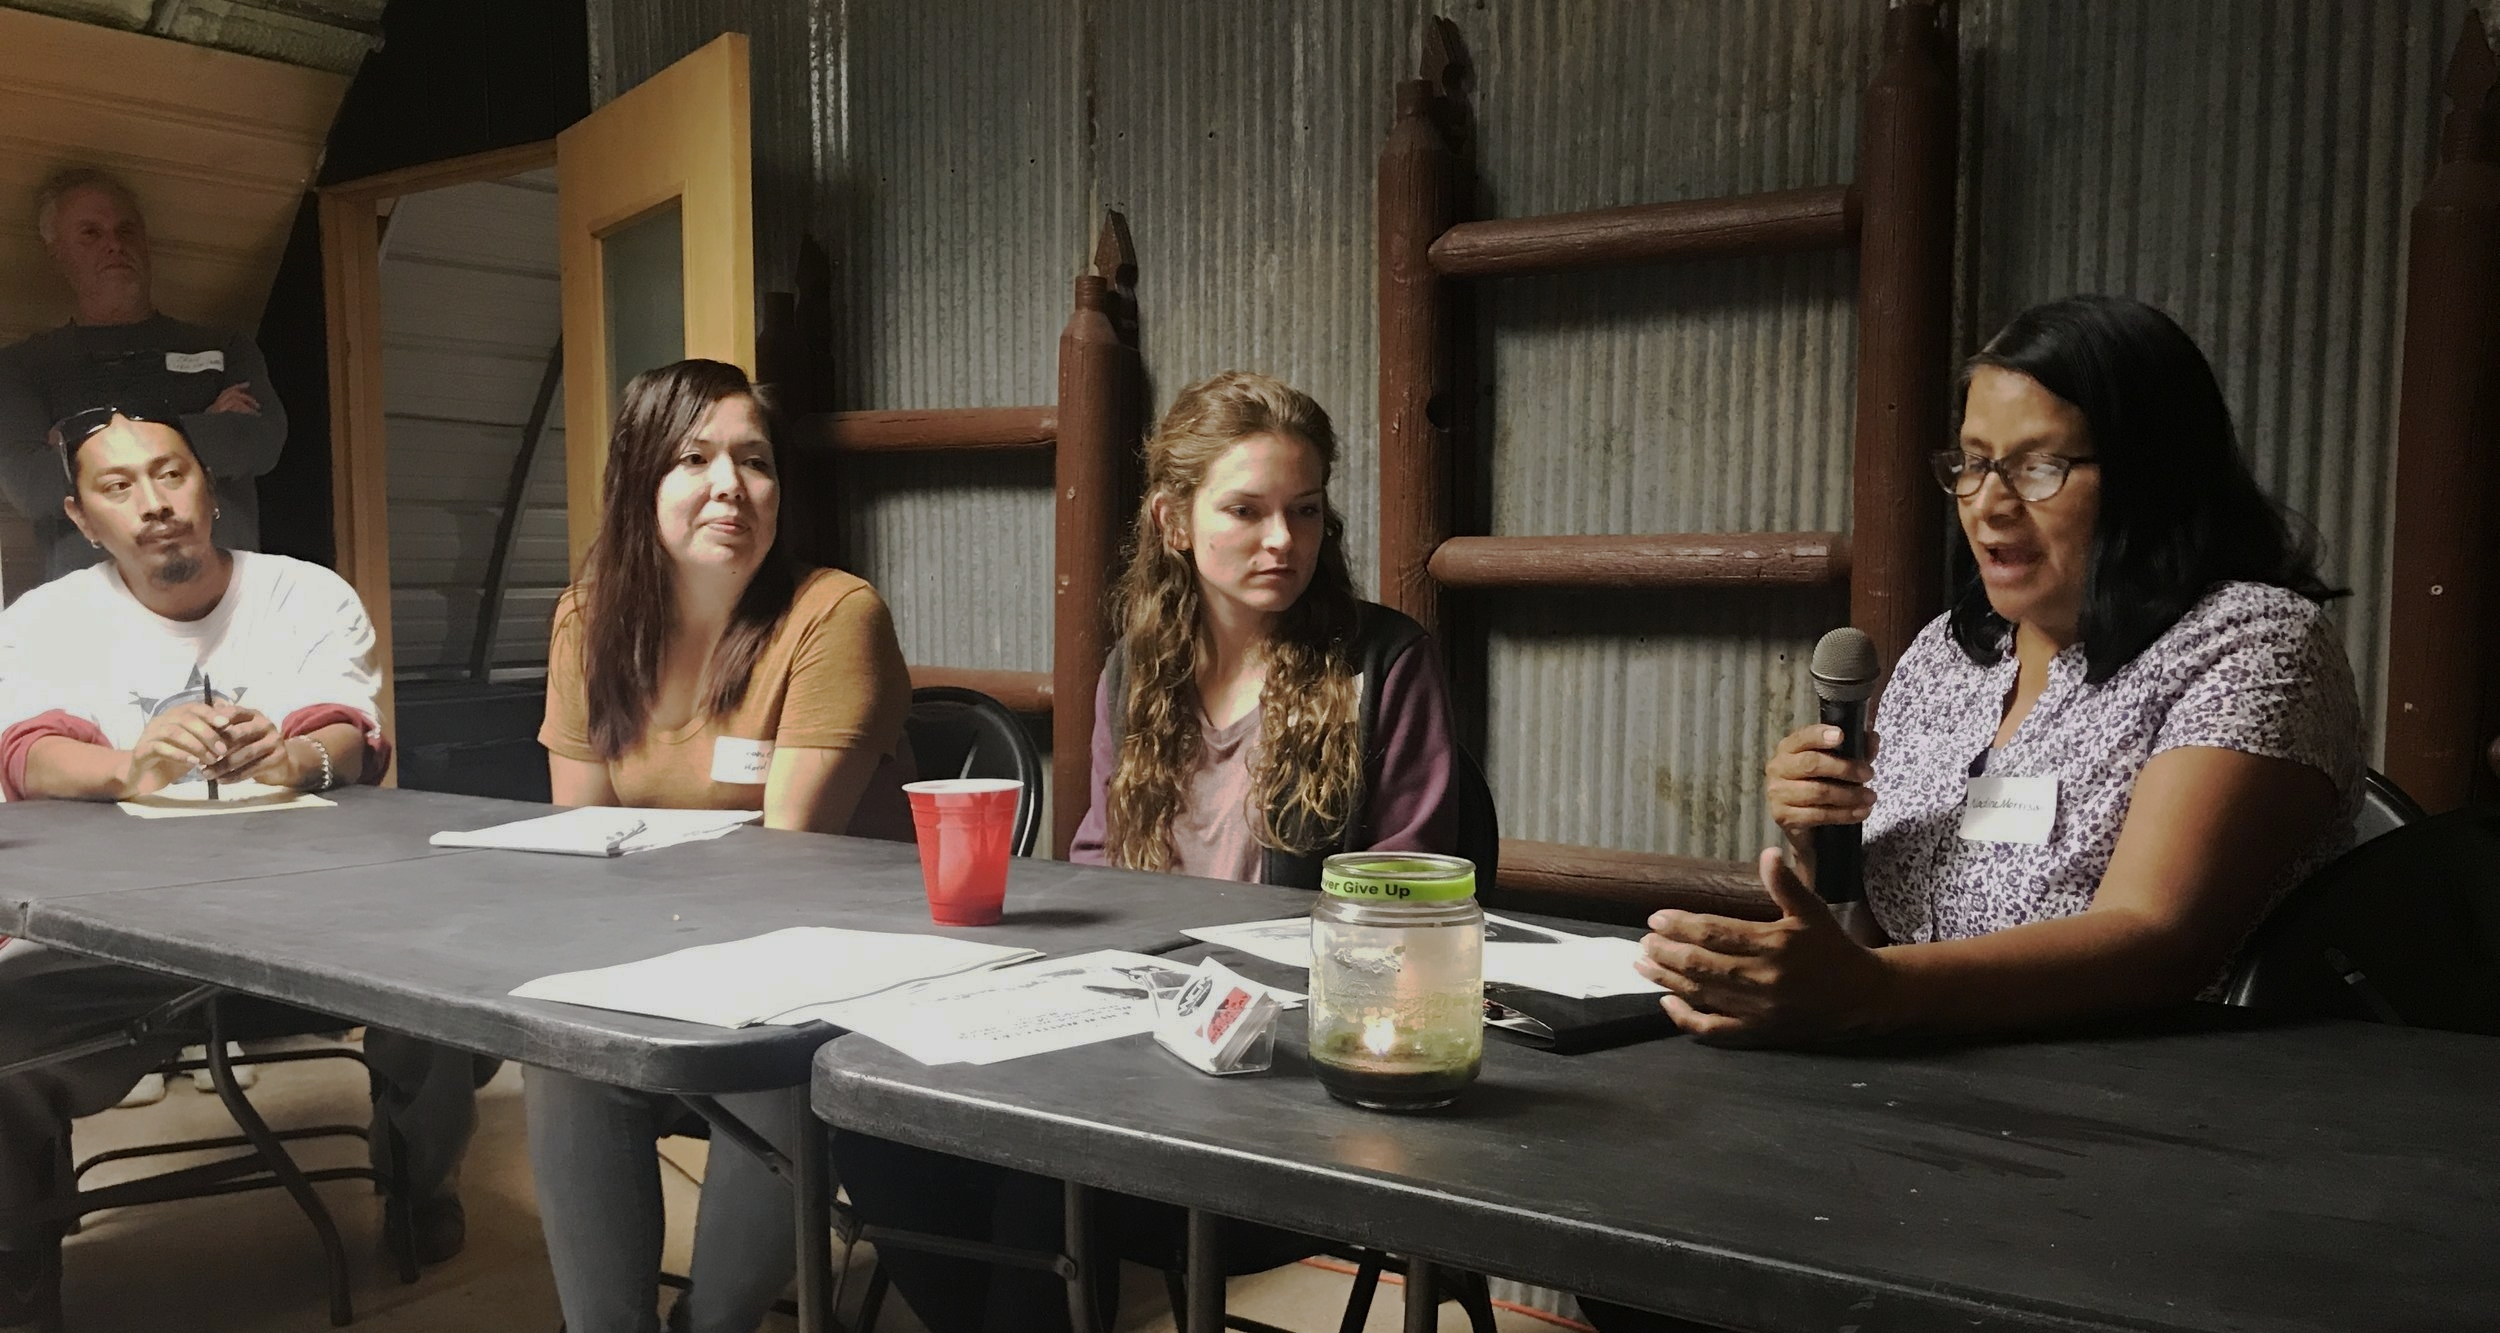 Panelists Billy Janis, Stephanie Clifford, Andrea Northup, and Nadine Morrison share their visions for Whiteclay.